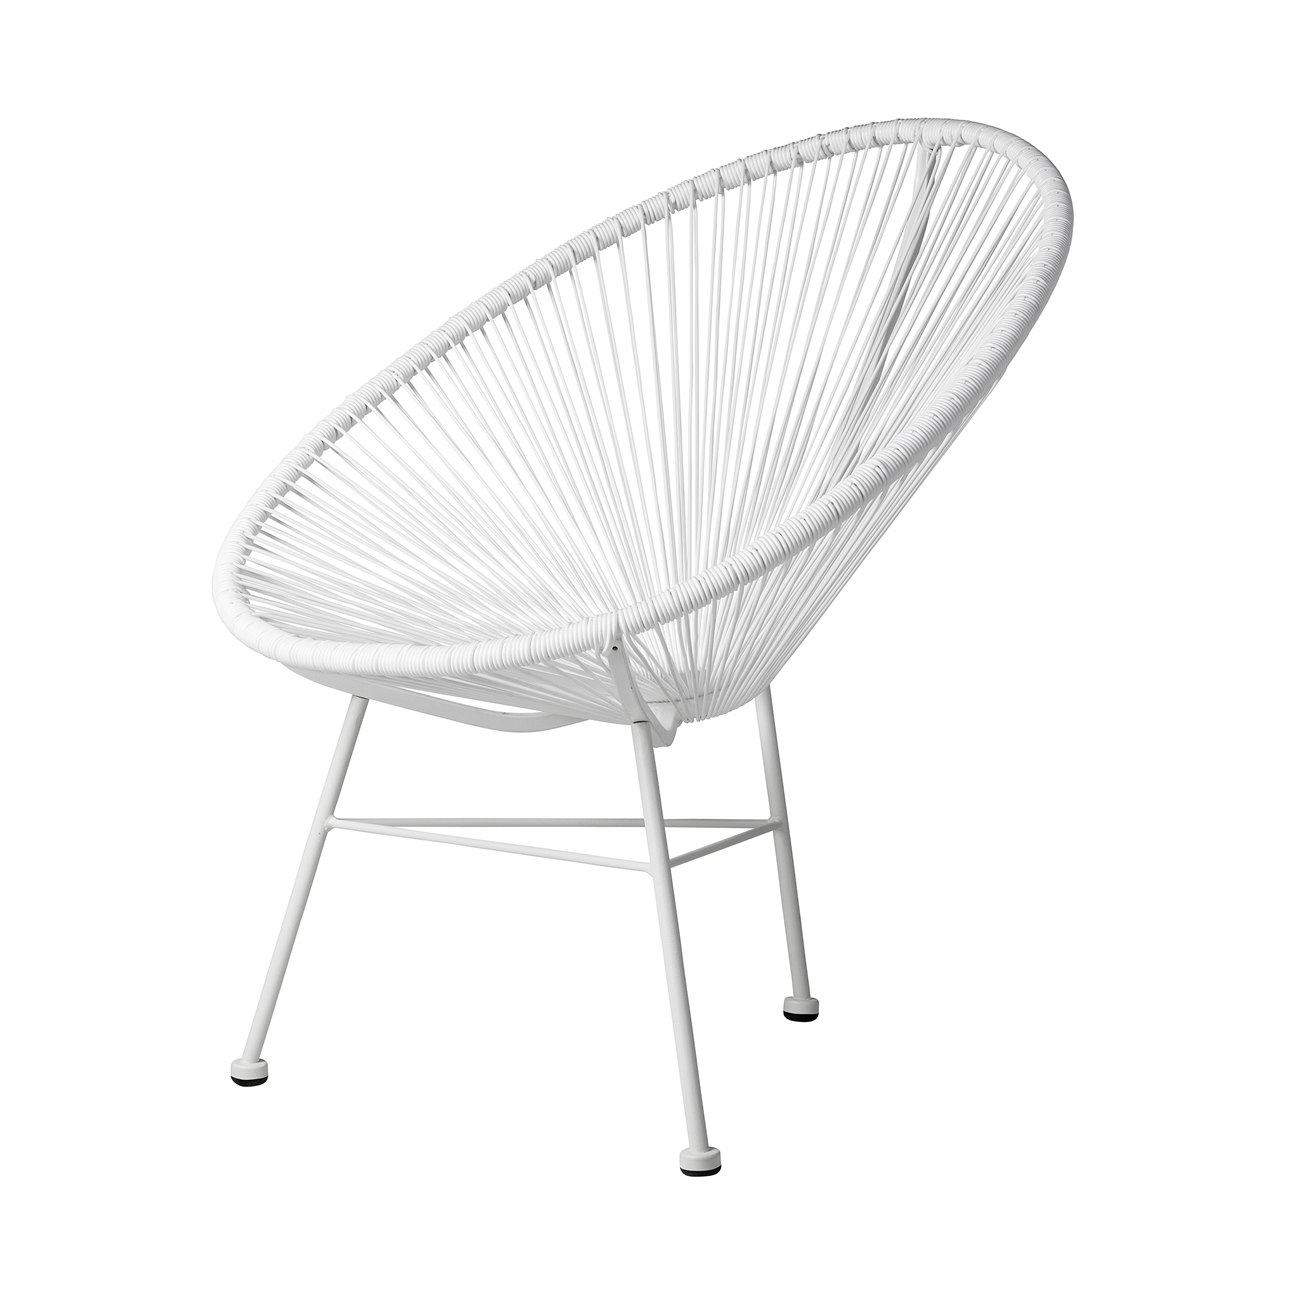 acapulco indoor outdoor lounge chair white weave on white frame - White Frame